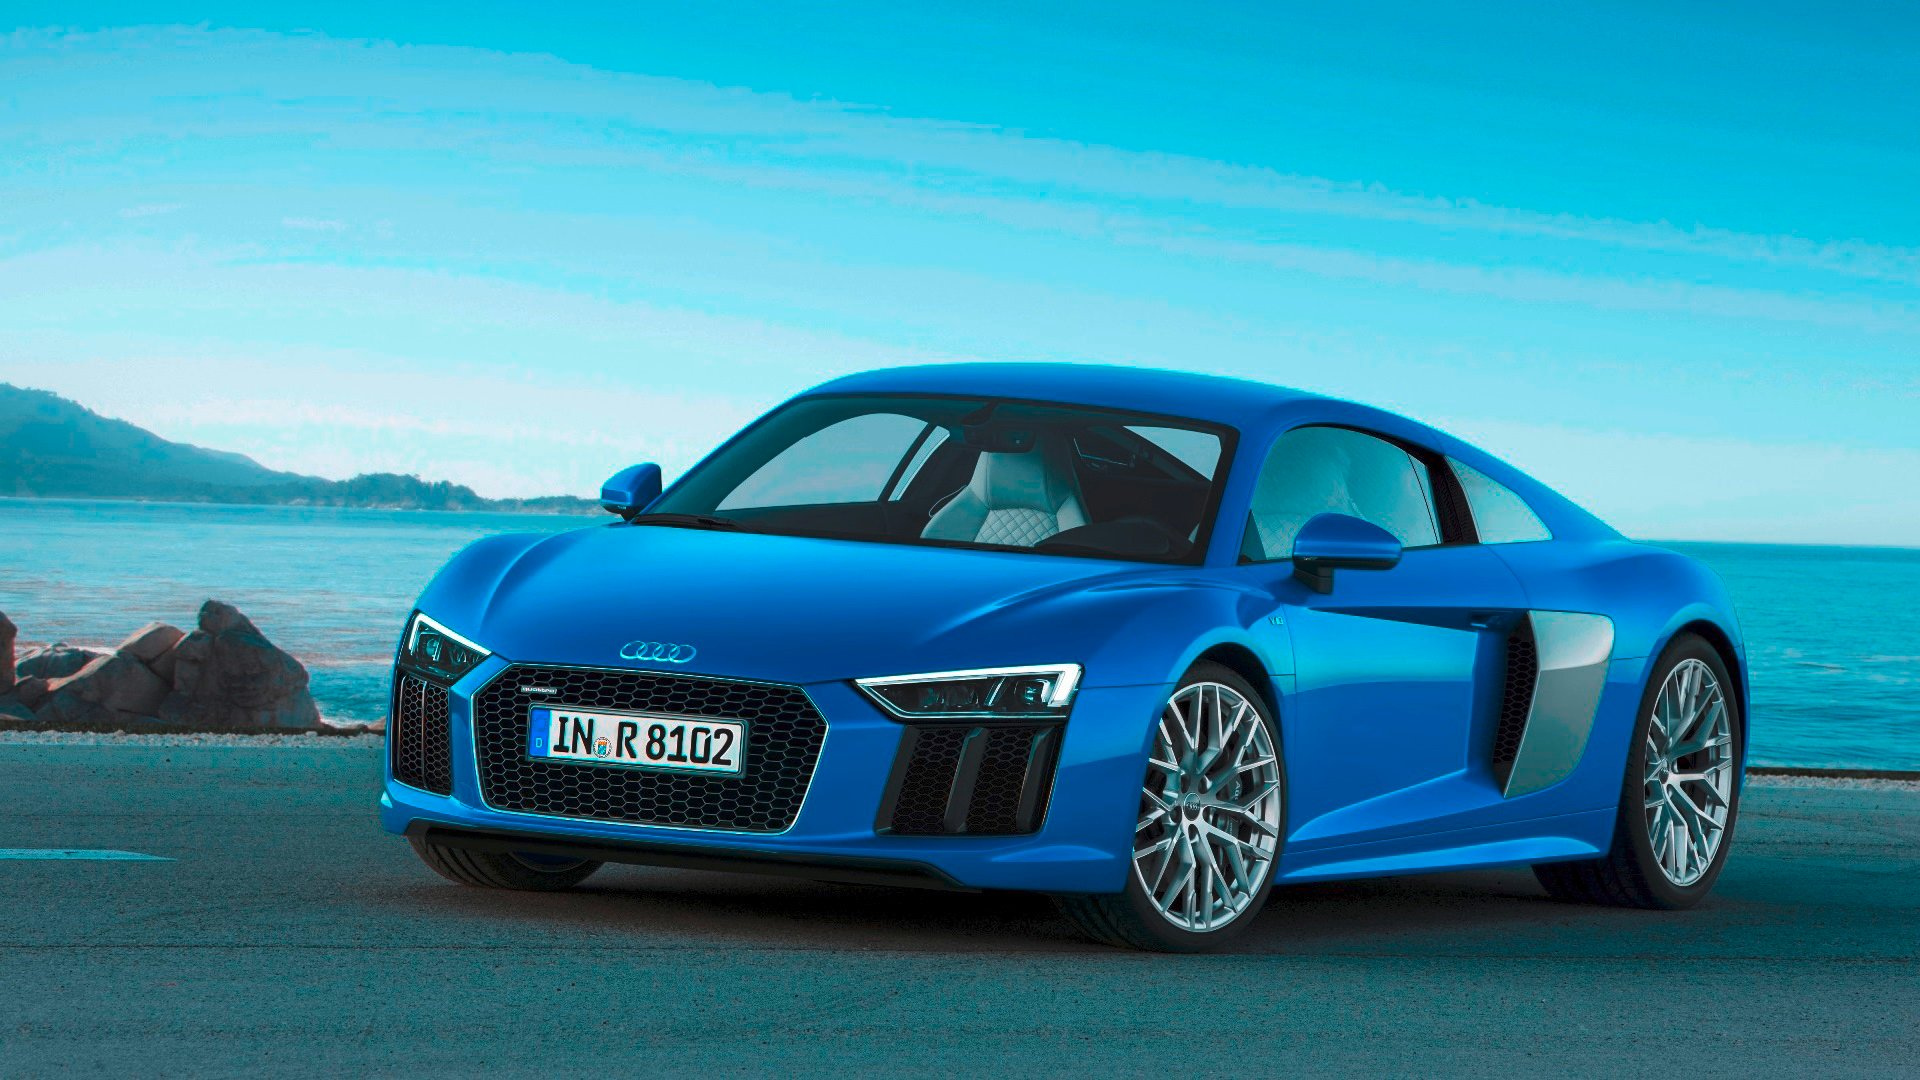 2017 Audi R8 Coupe © Volkswagen AG